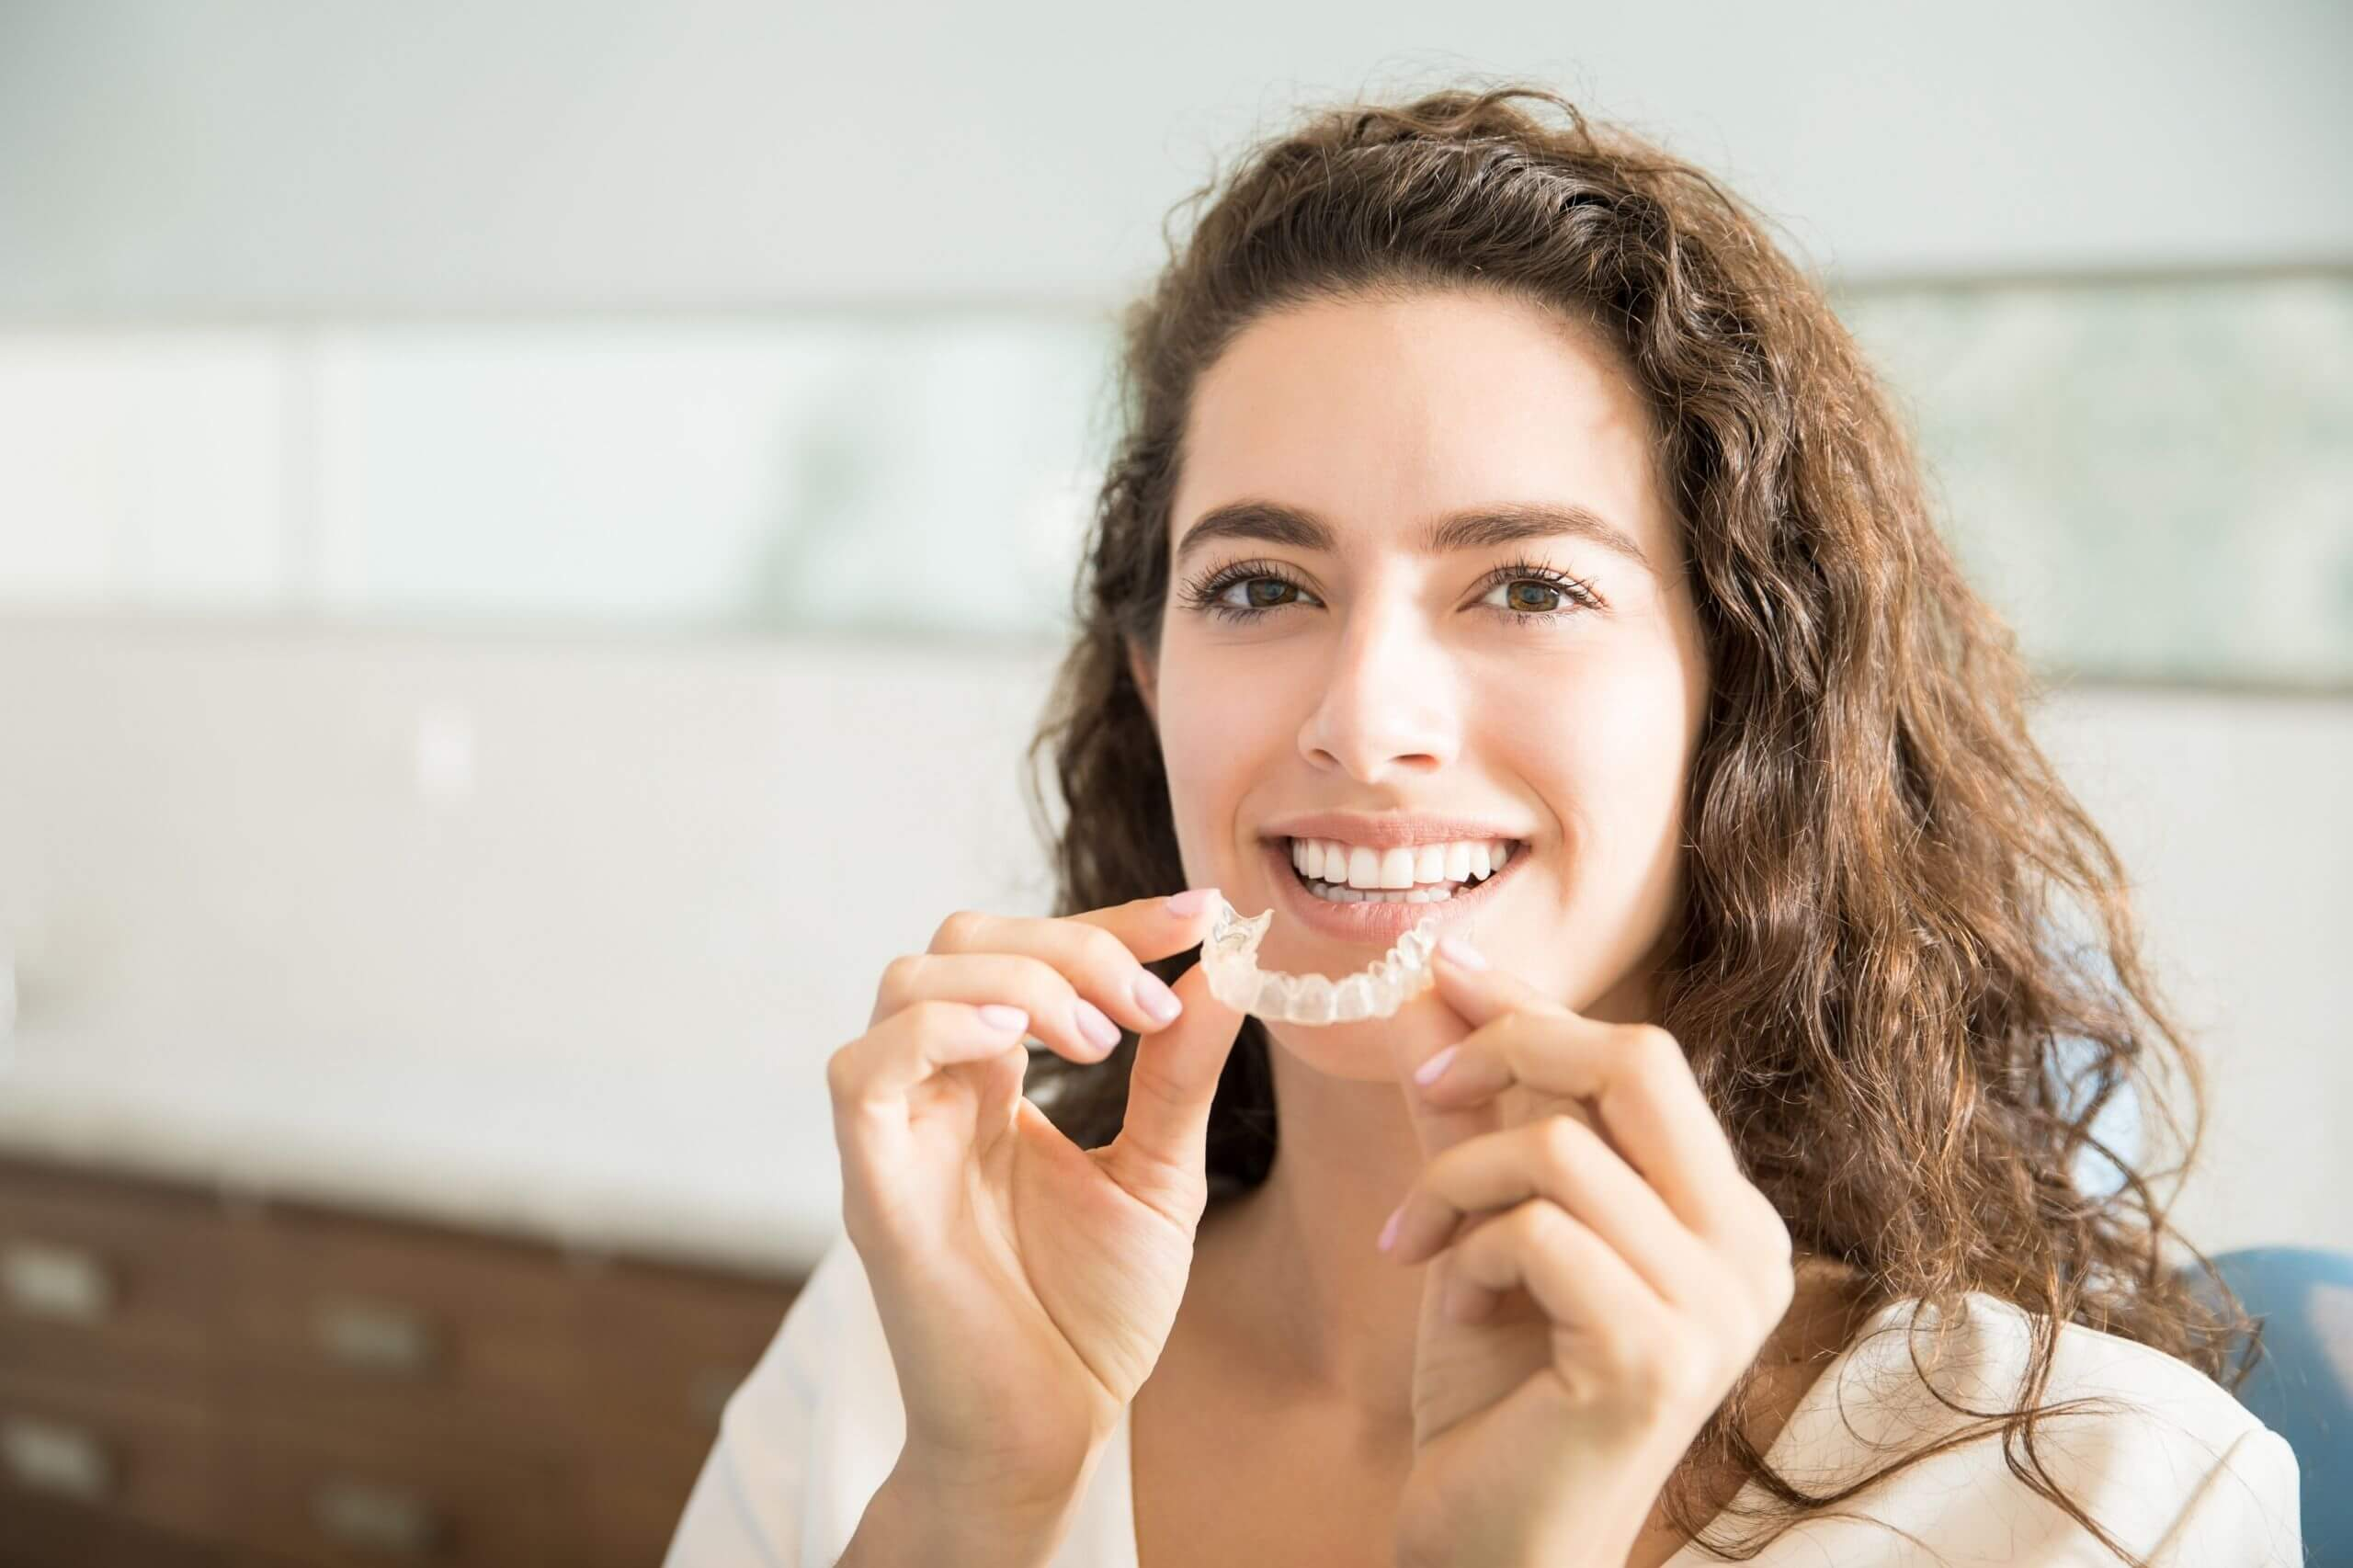 A woman holding invisalign braces and smiling, Harwood Dental Care